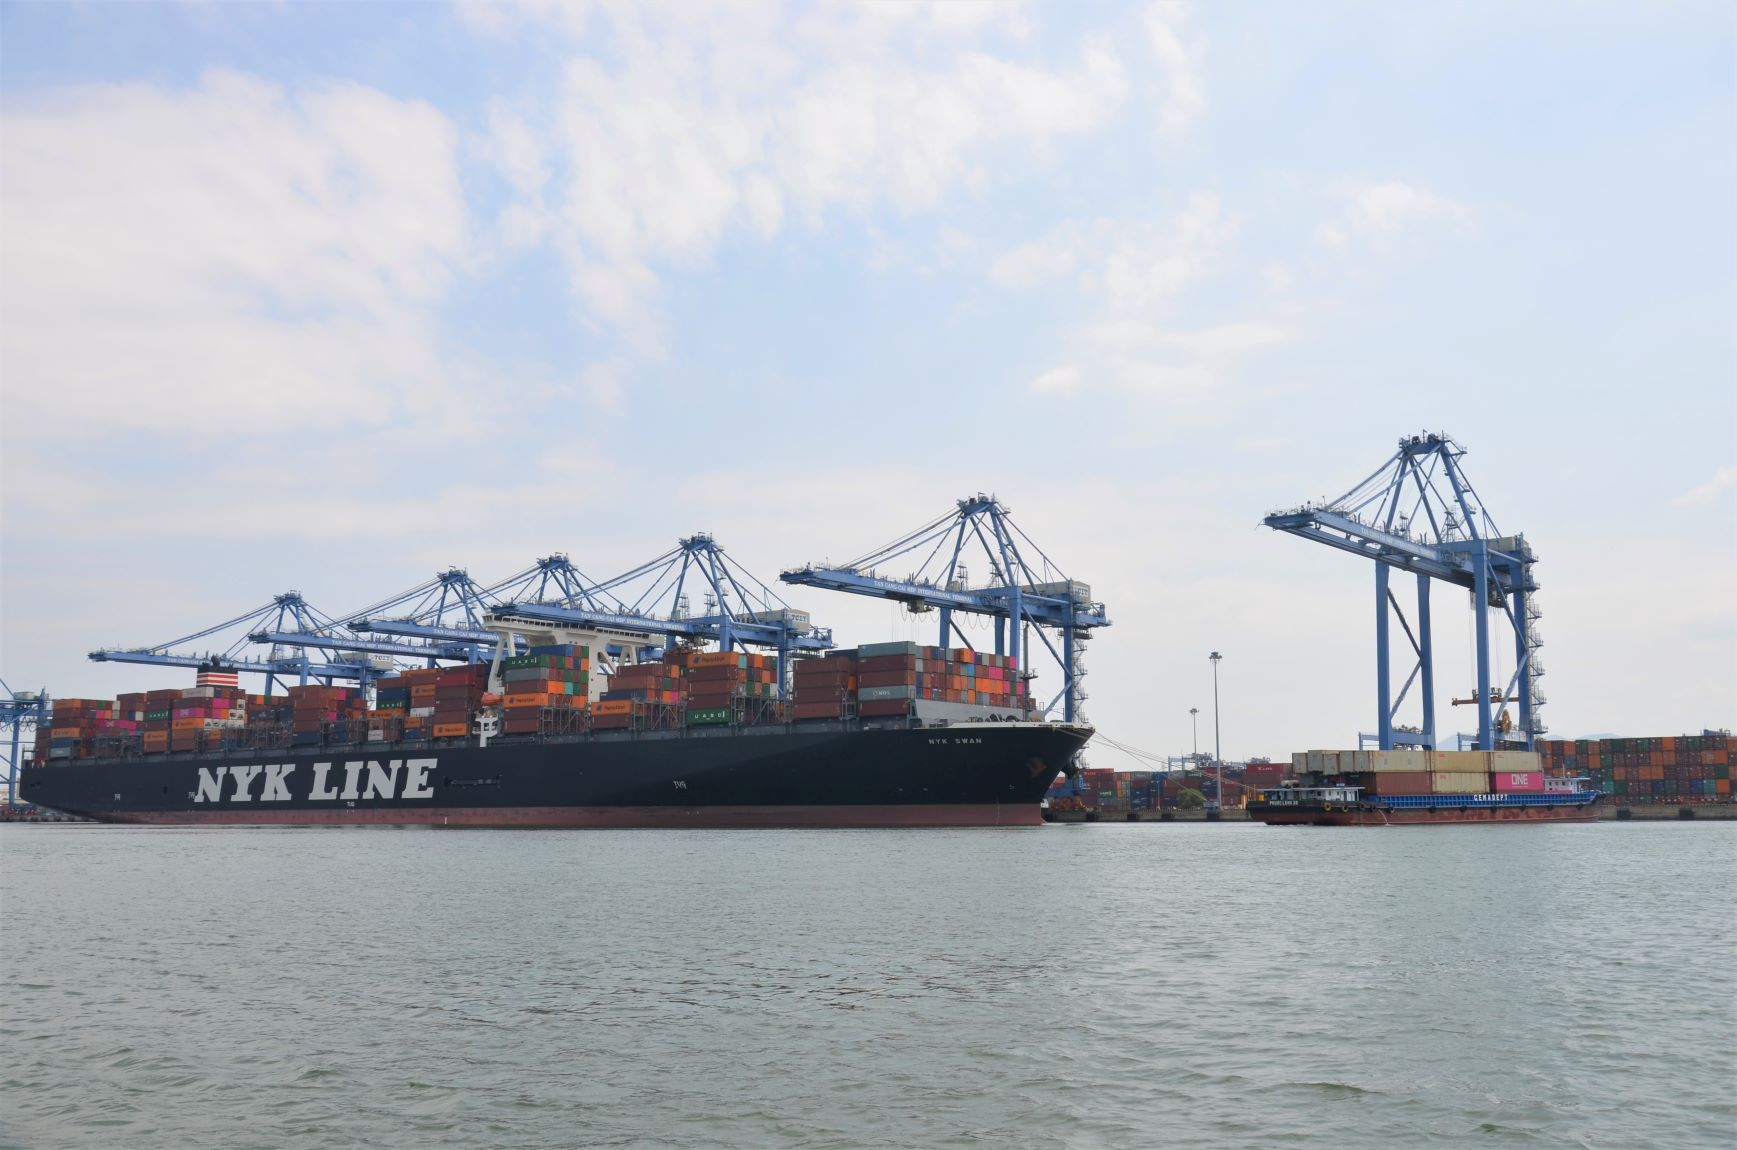 TCIT- Vietnam's largest deep-sea container port set a new record